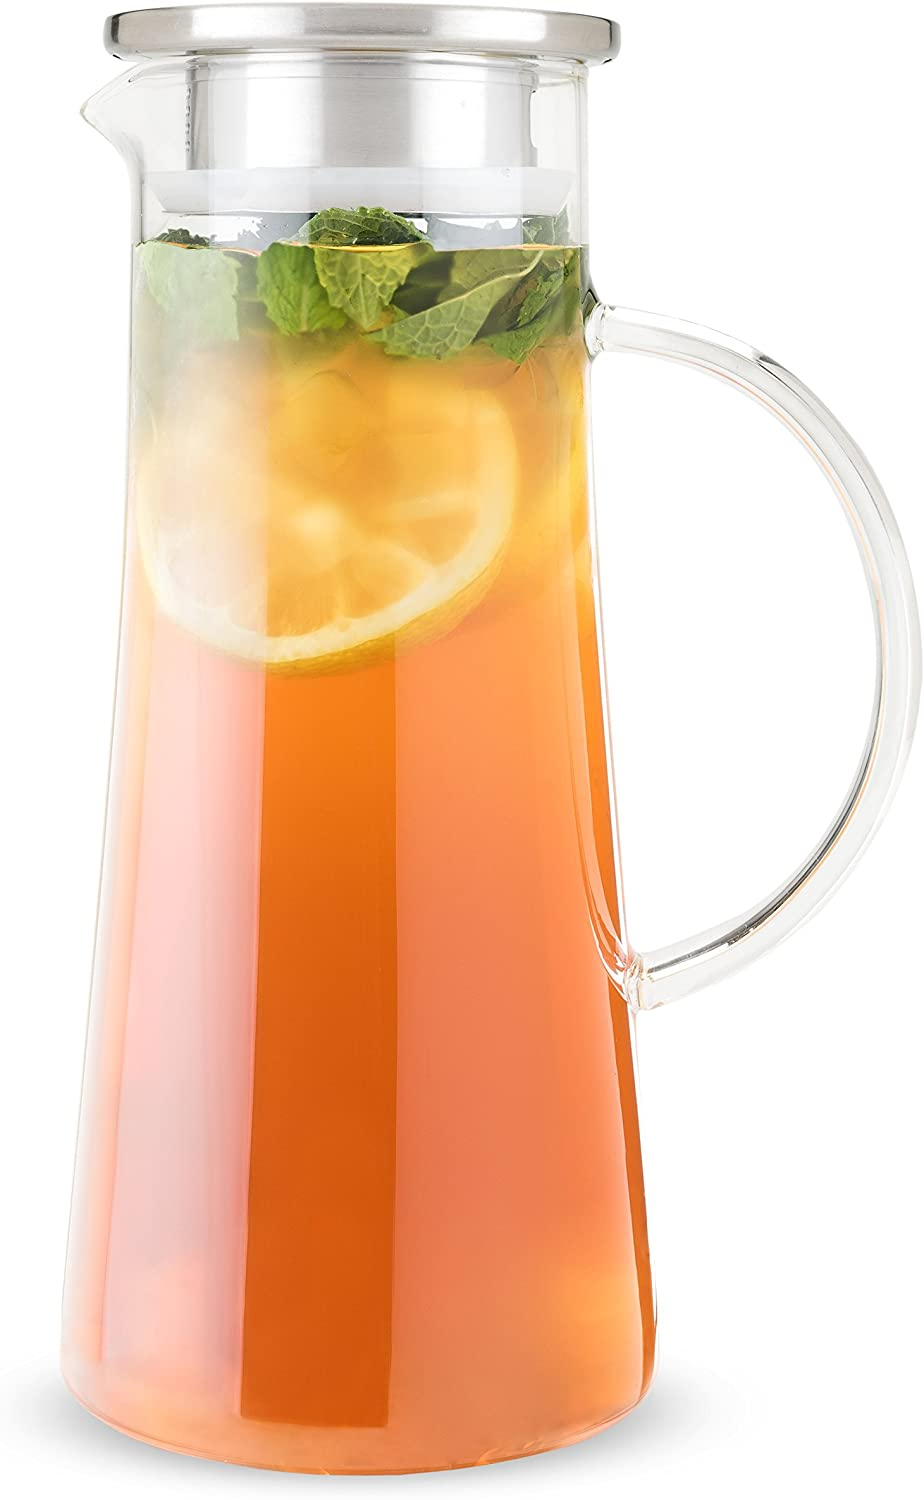 PINKY UP Charlie Glass Carafe Loose Leaf Accessories, Iced Tea Beverage Brewer, 1.5 liter Capacity, Clear